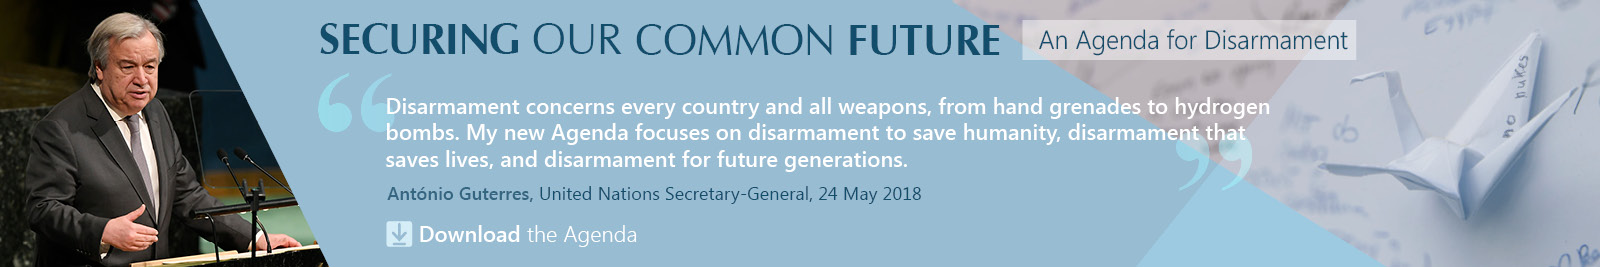 Securing our common future, an agenda for disarmament